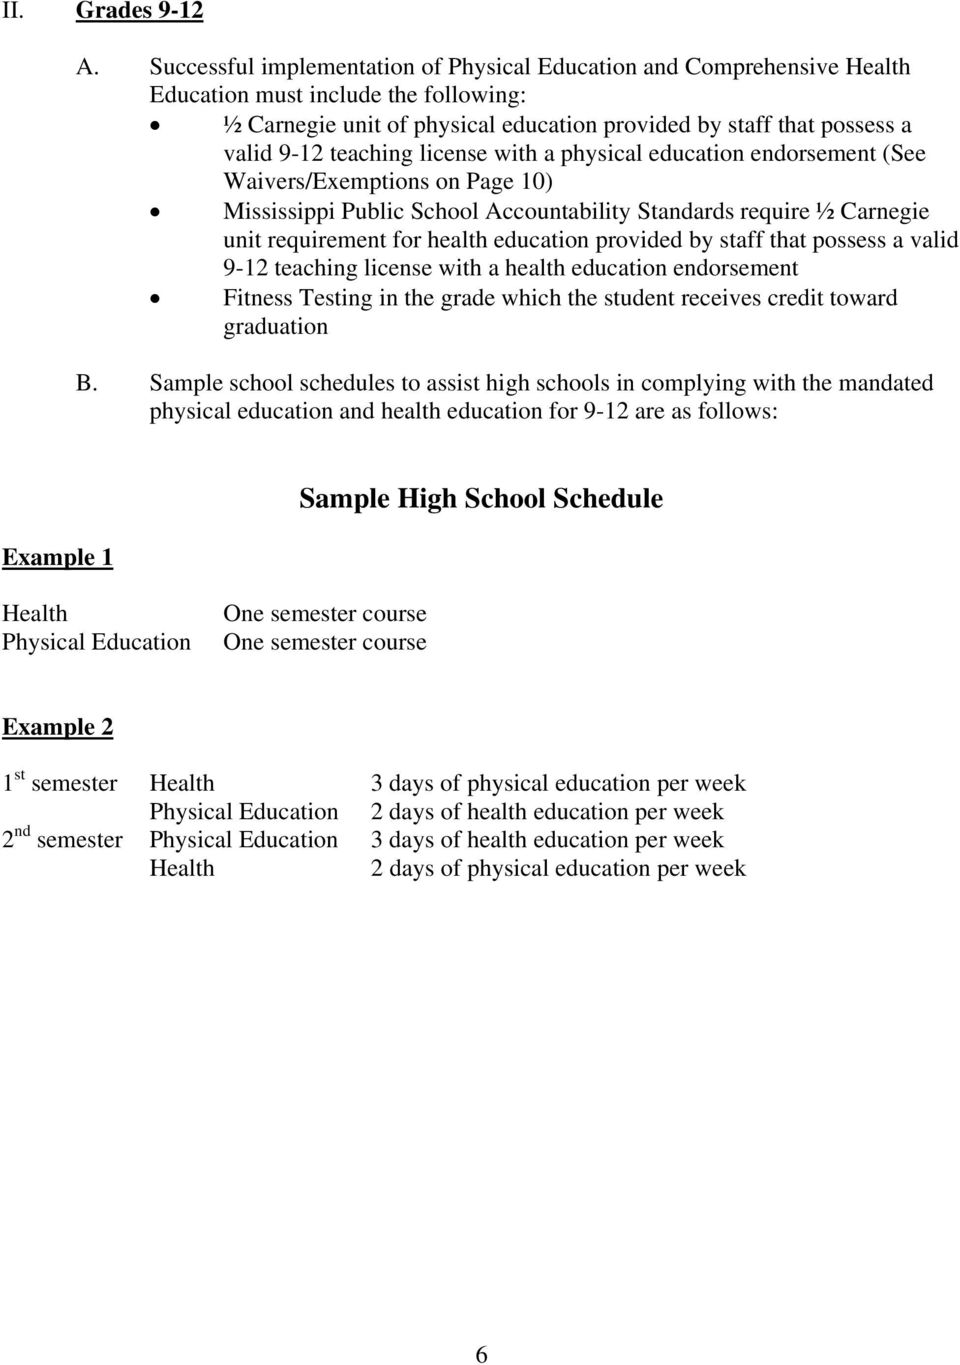 teaching license with a physical education endorsement (See Waivers/Exemptions on Page 10) Mississippi Public School Accountability Standards require ½ Carnegie unit requirement for health education